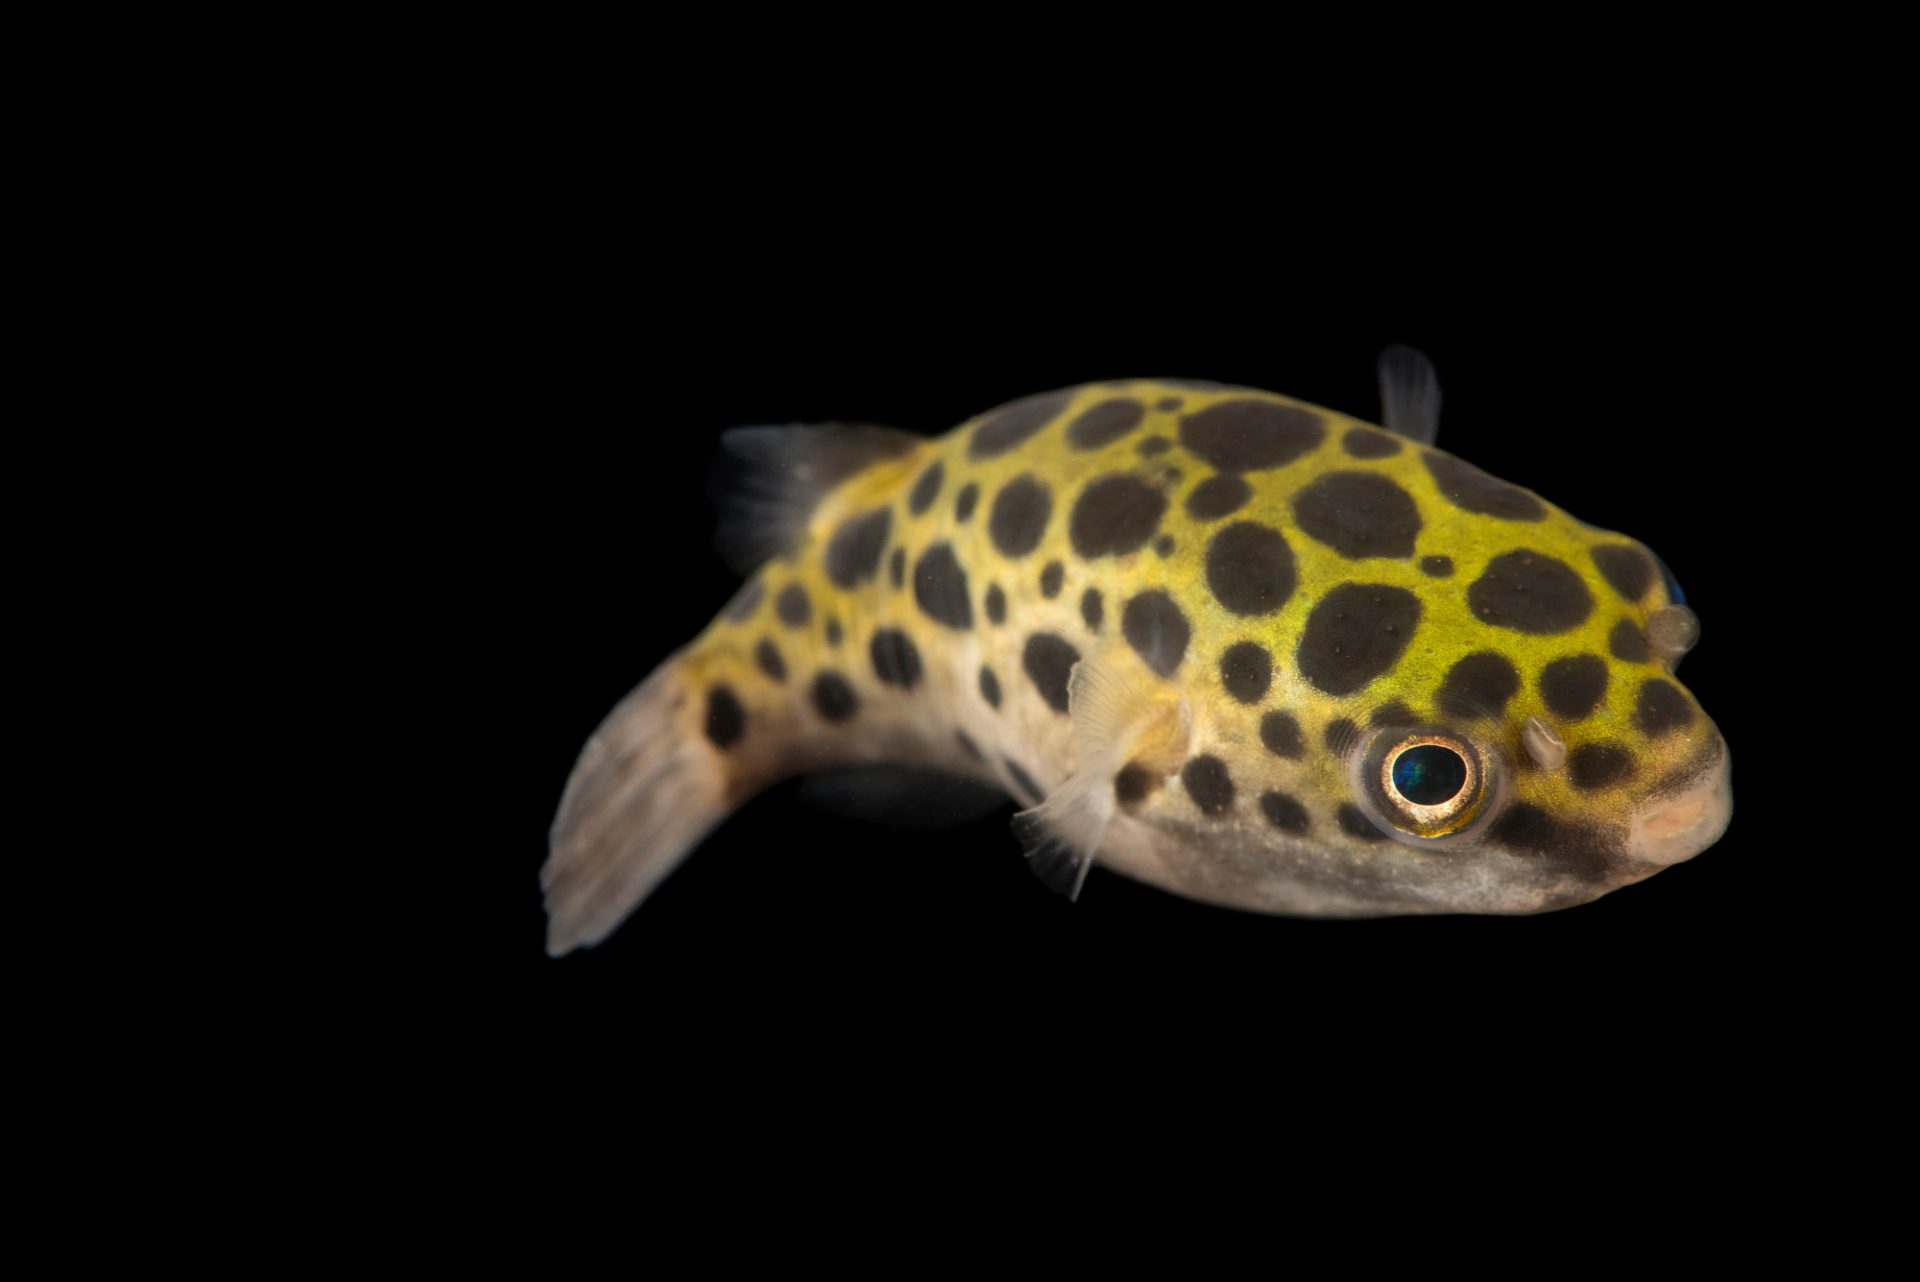 Photo: A green spotted puffer (Tetraodon nigroviridis) at the Singapore Zoo's River Safari area.